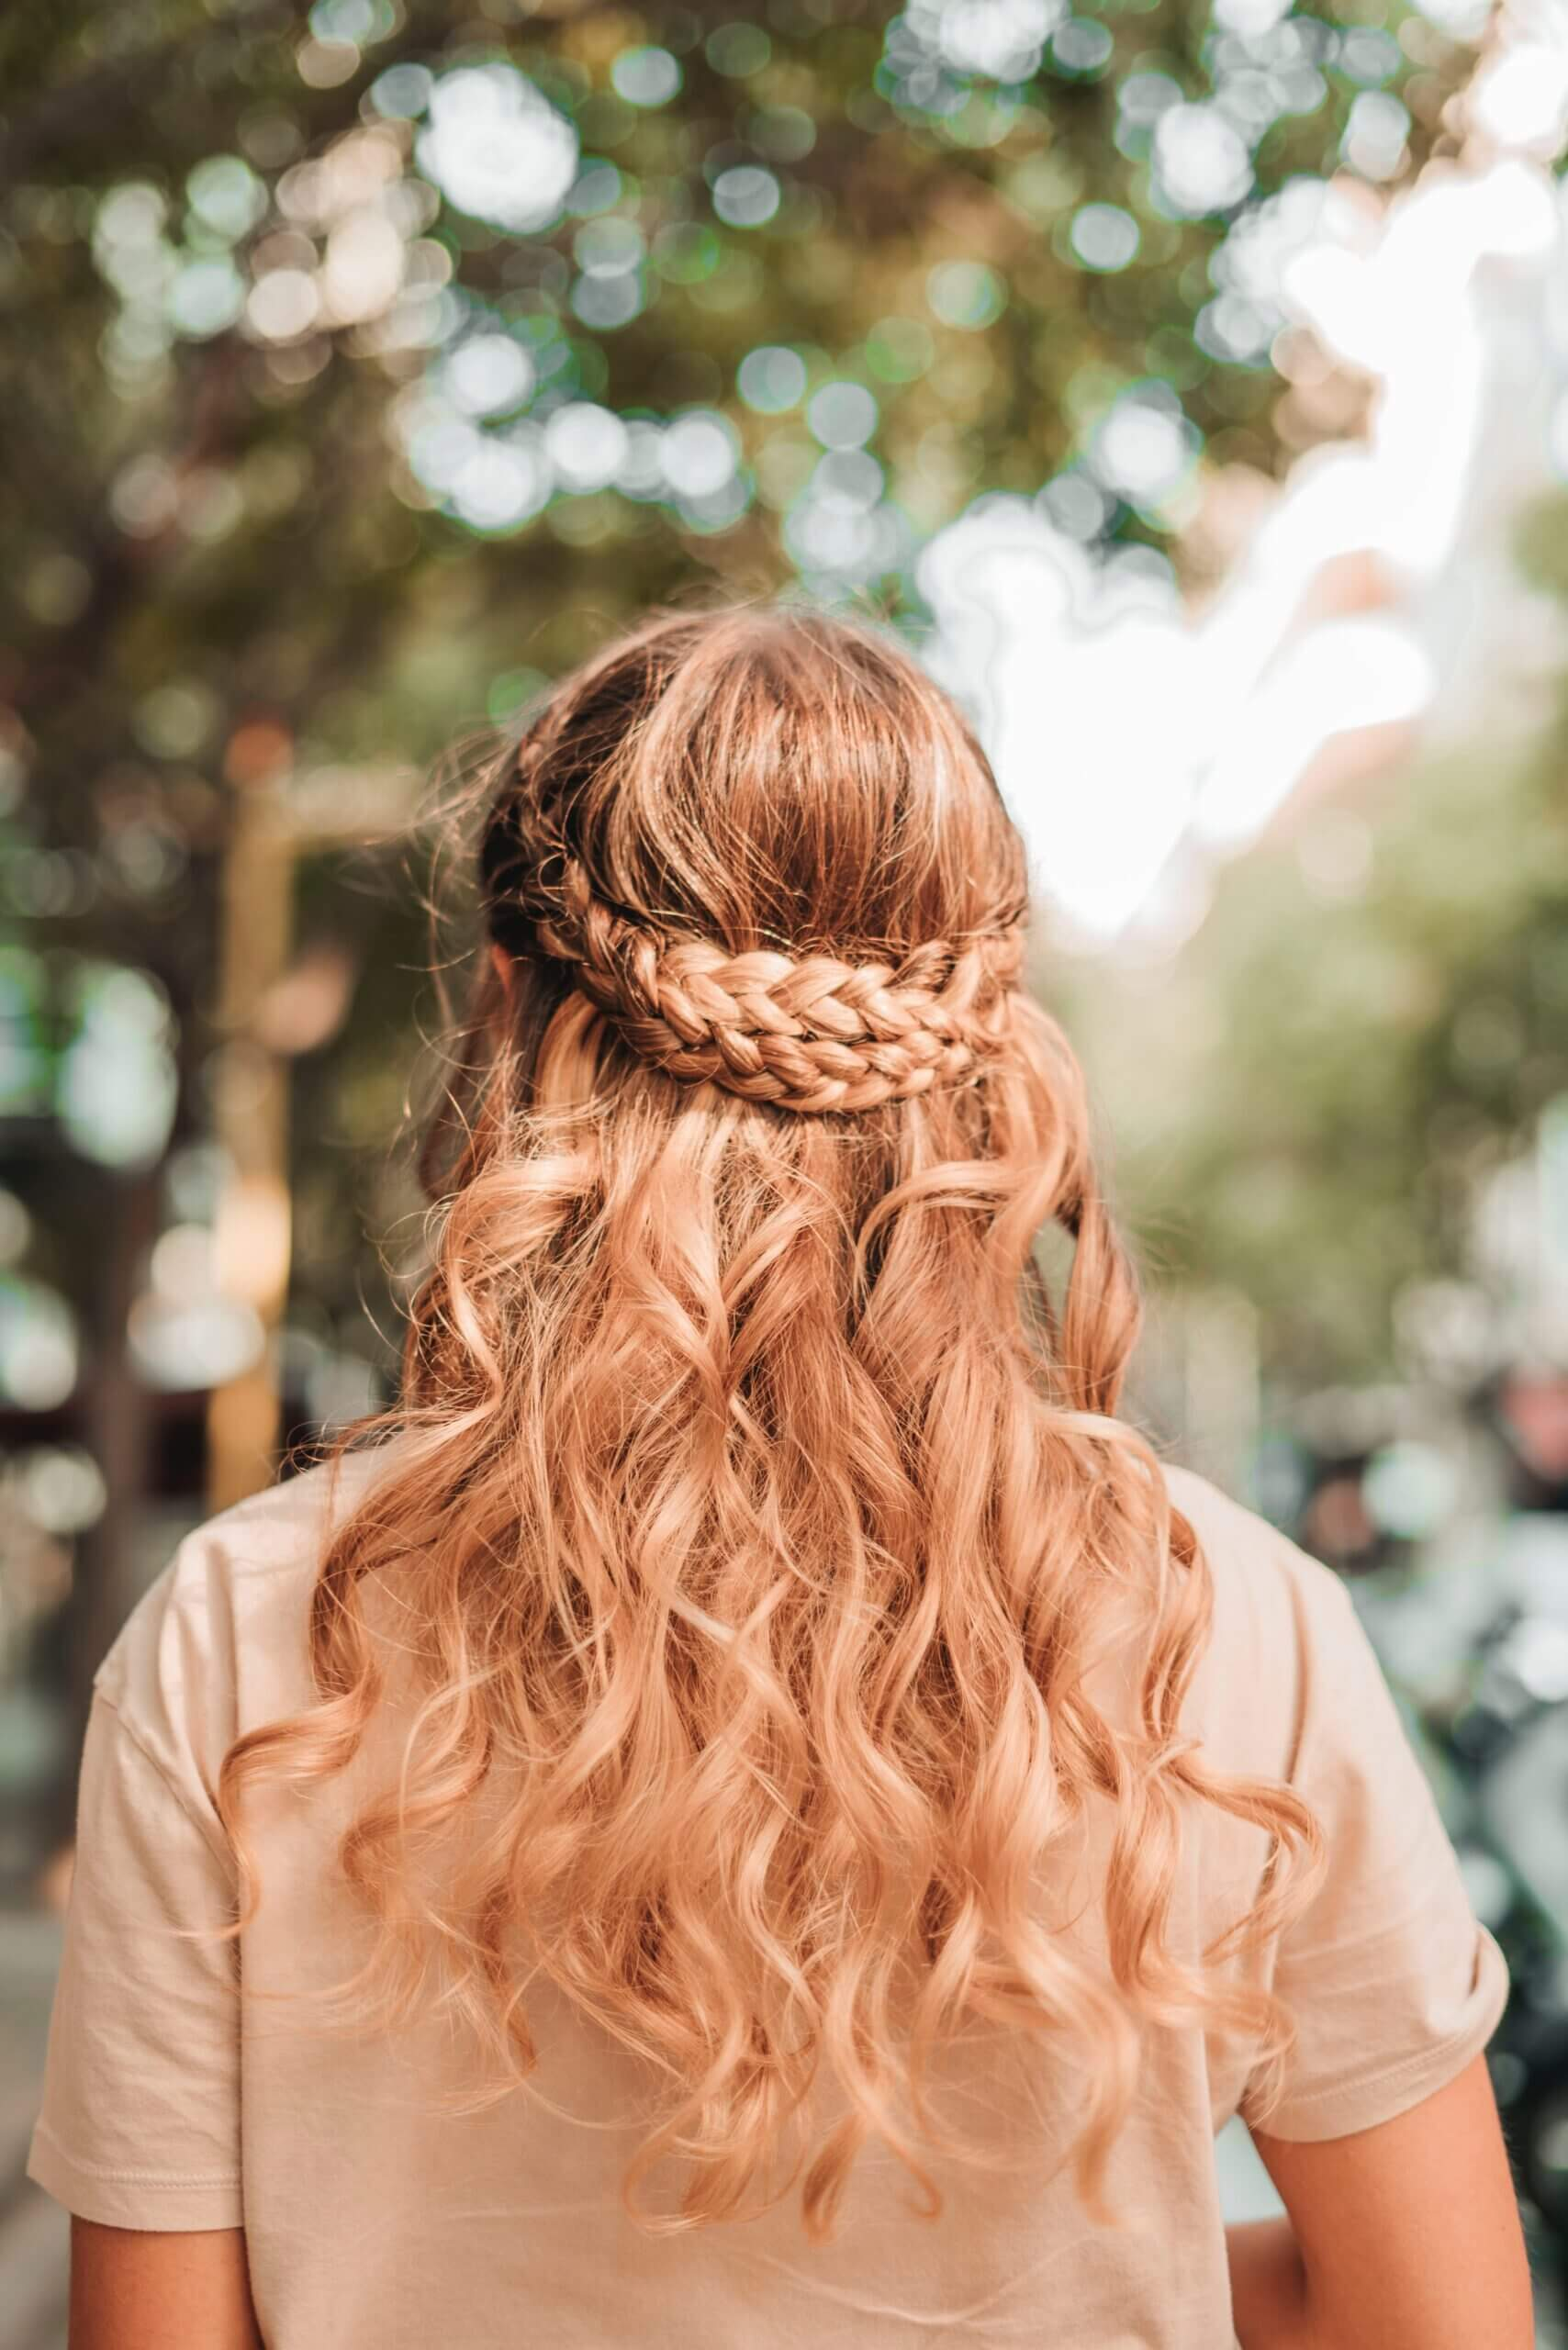 Movable curls